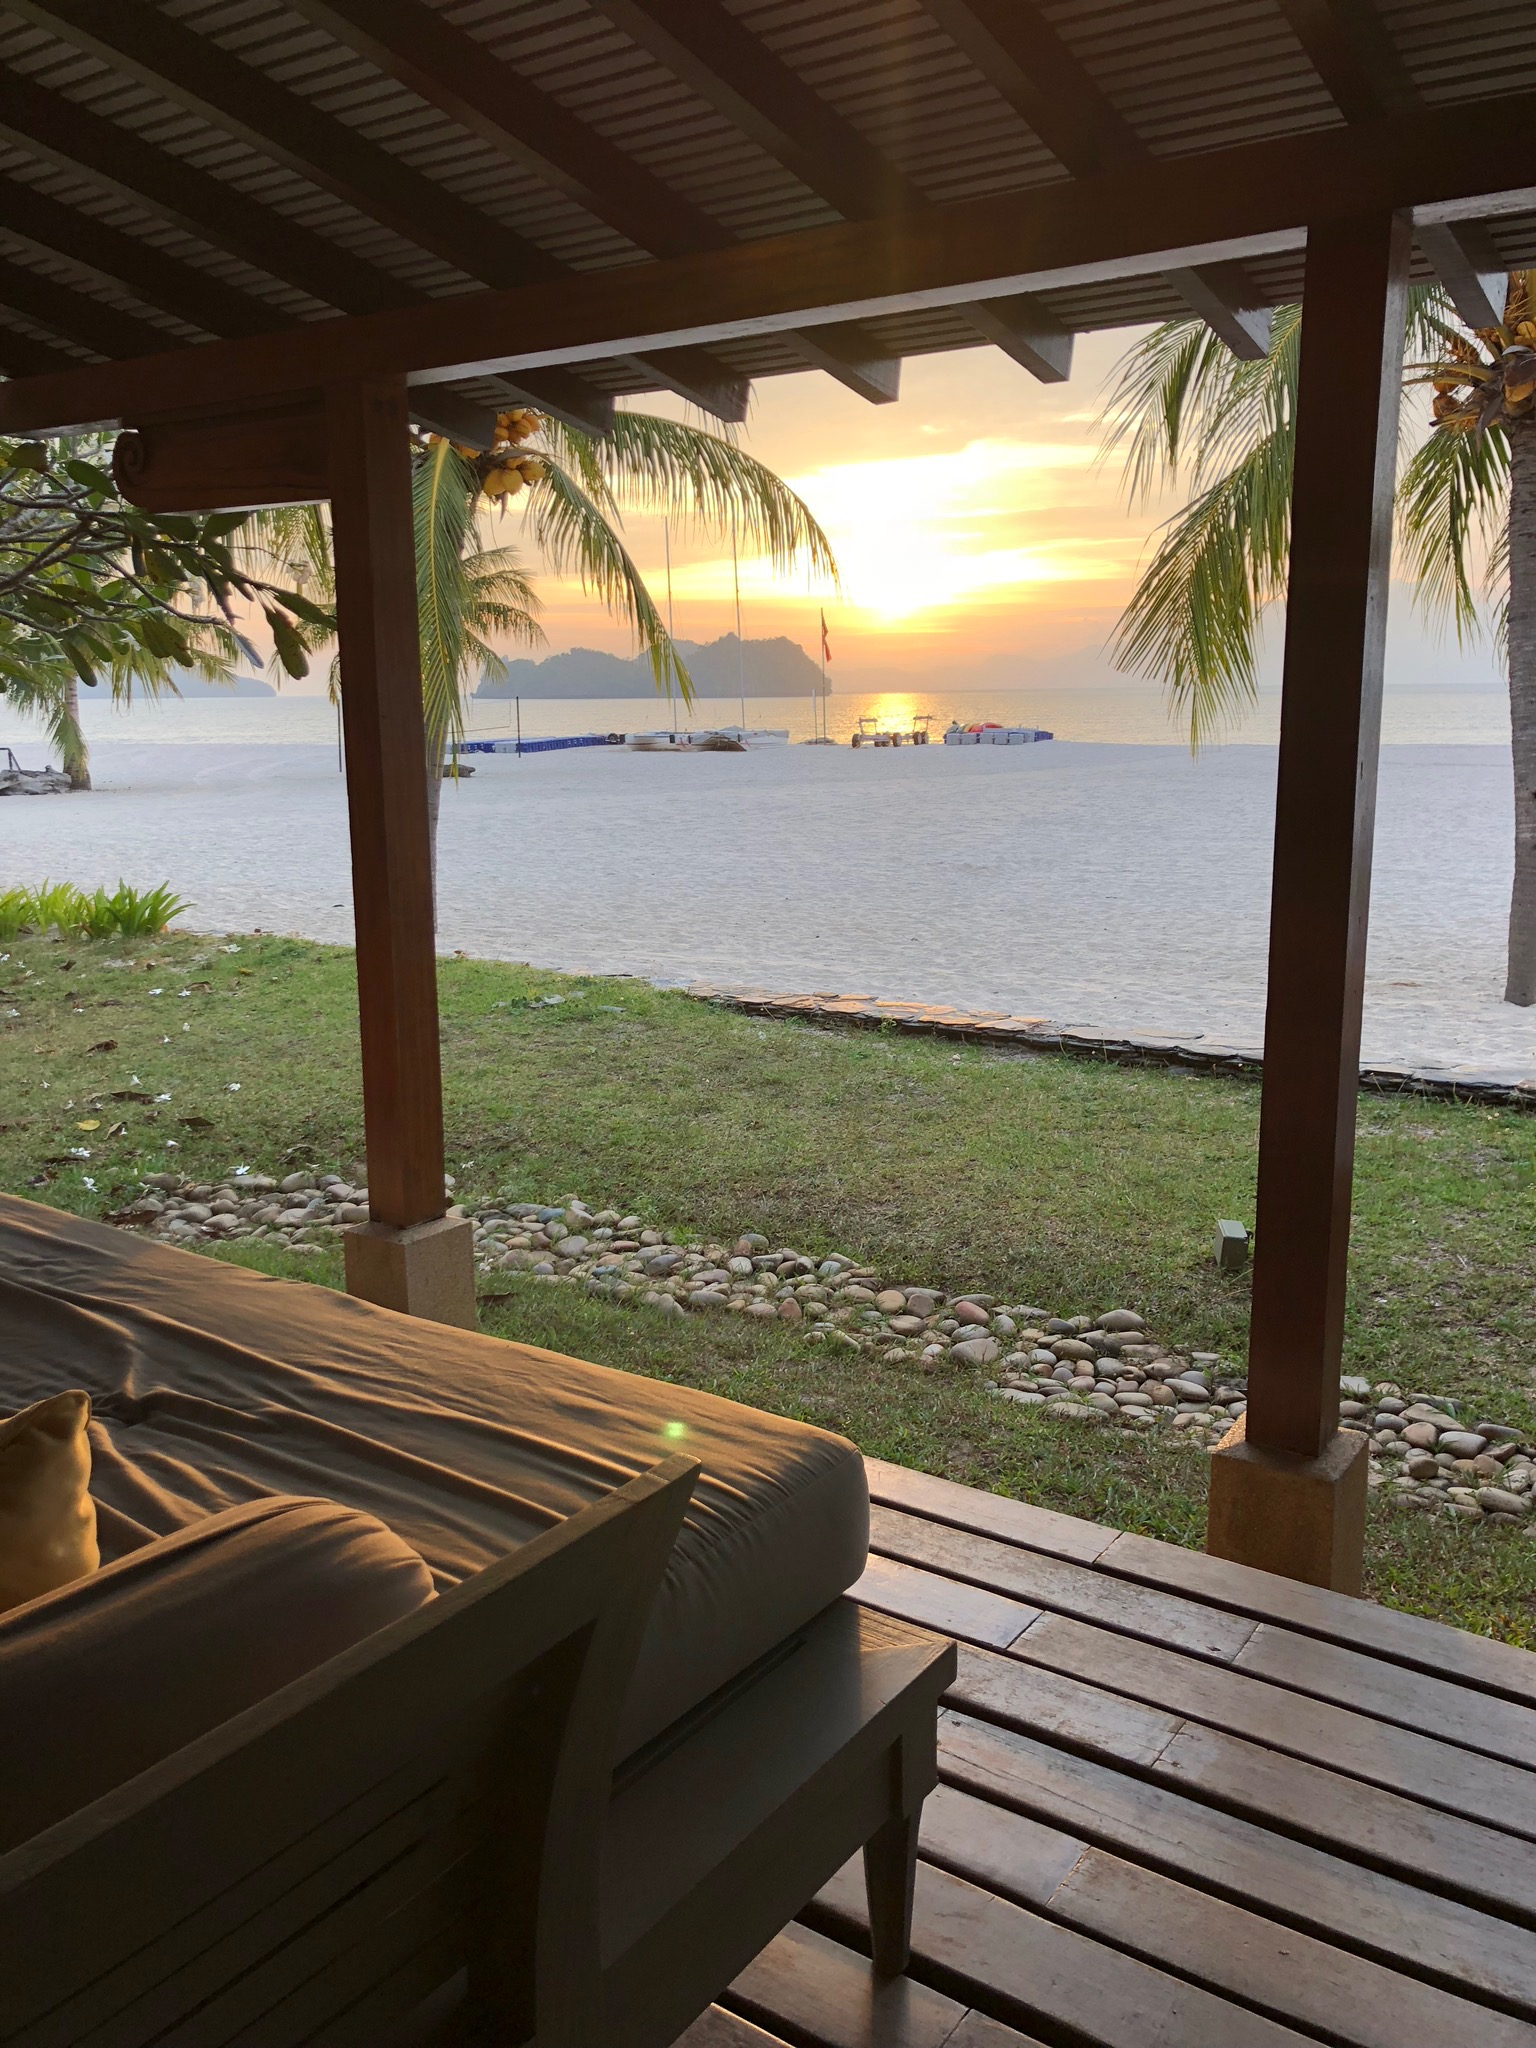 Sundeck from the beachfront villas, best place for an evening drink